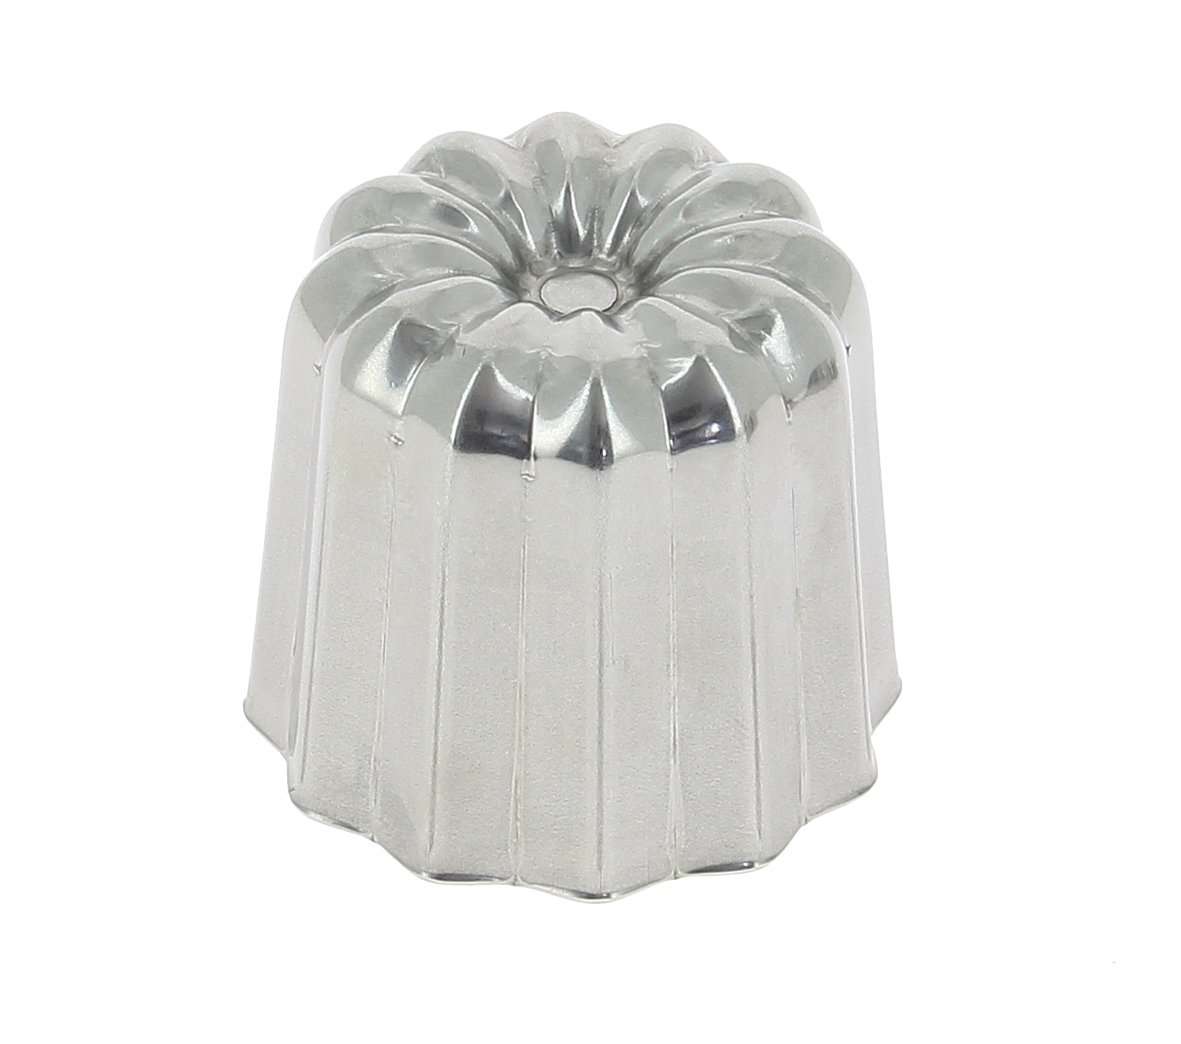 STAINLESS STEEL''CANELES'' FLUTED MOLD, O 1.75-Inch